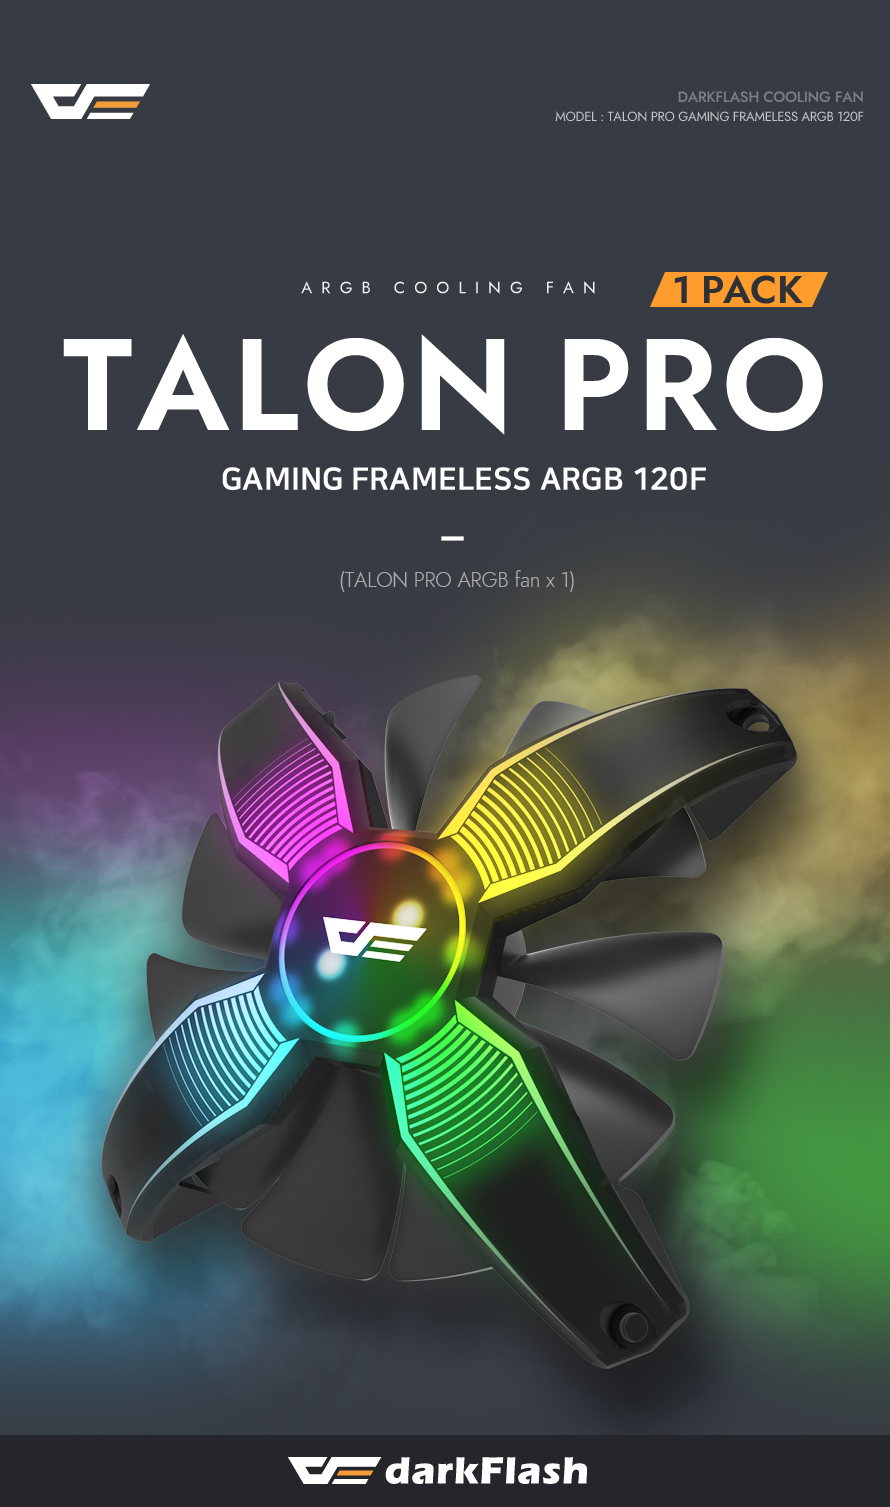 darkFlash TALON PRO ARGB (1PACK)